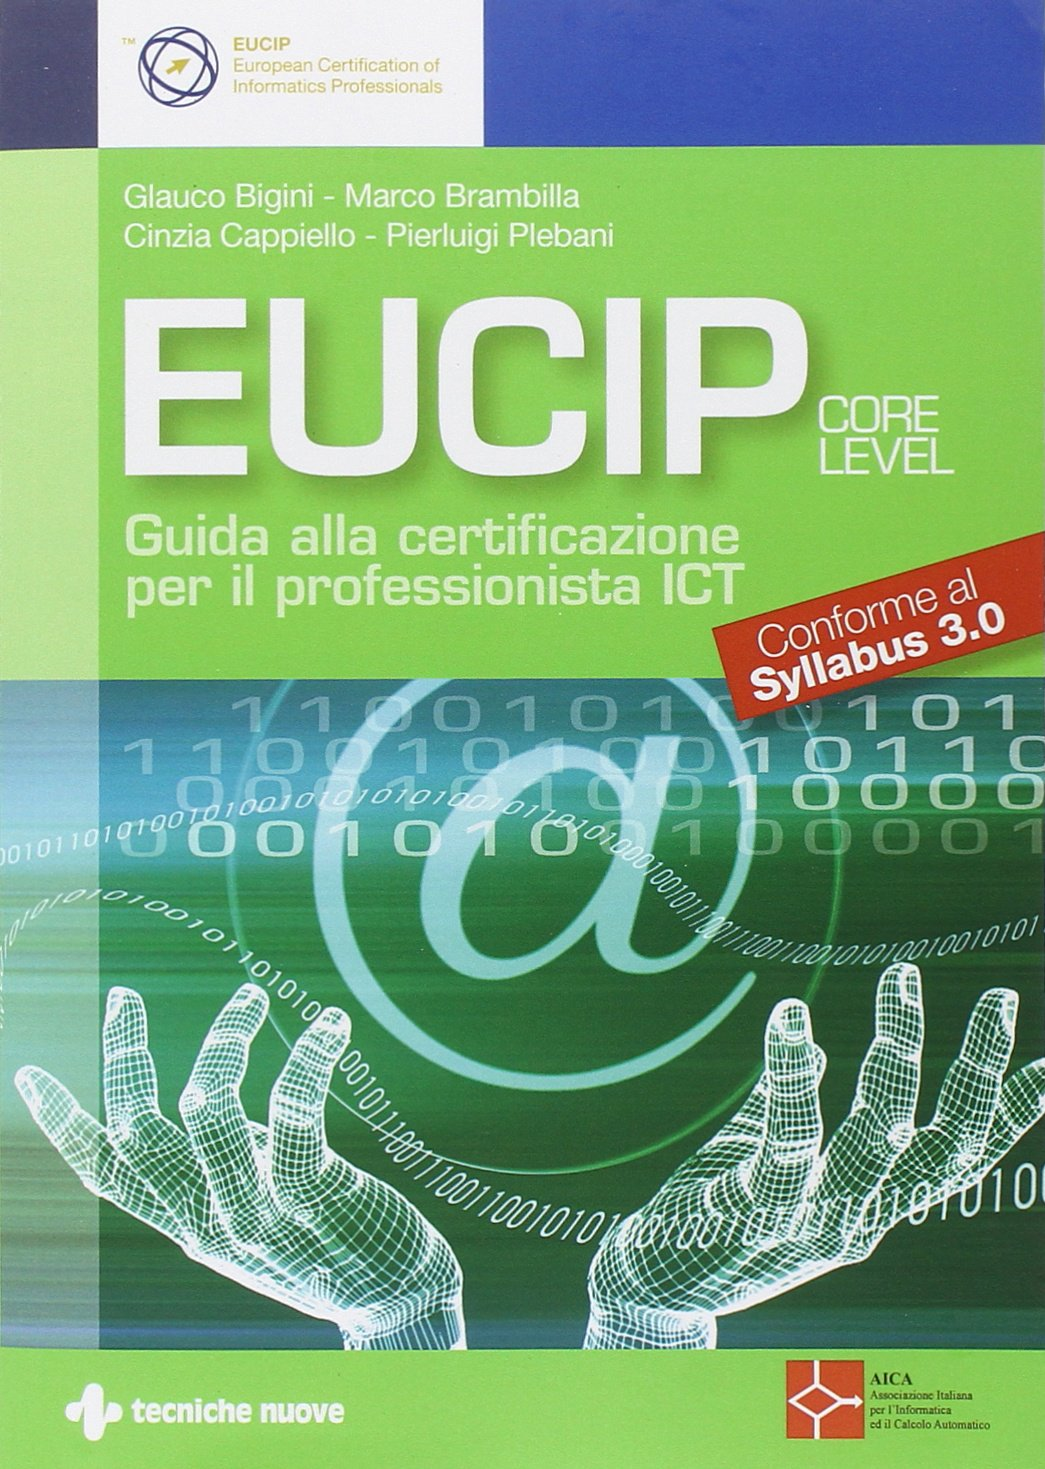 Download Eucip. Guida Alla Certificazione Per Il Professionista ICT. Core Level. Conforme Al Syllabus 3.0 (La Patente Europea Del C... 